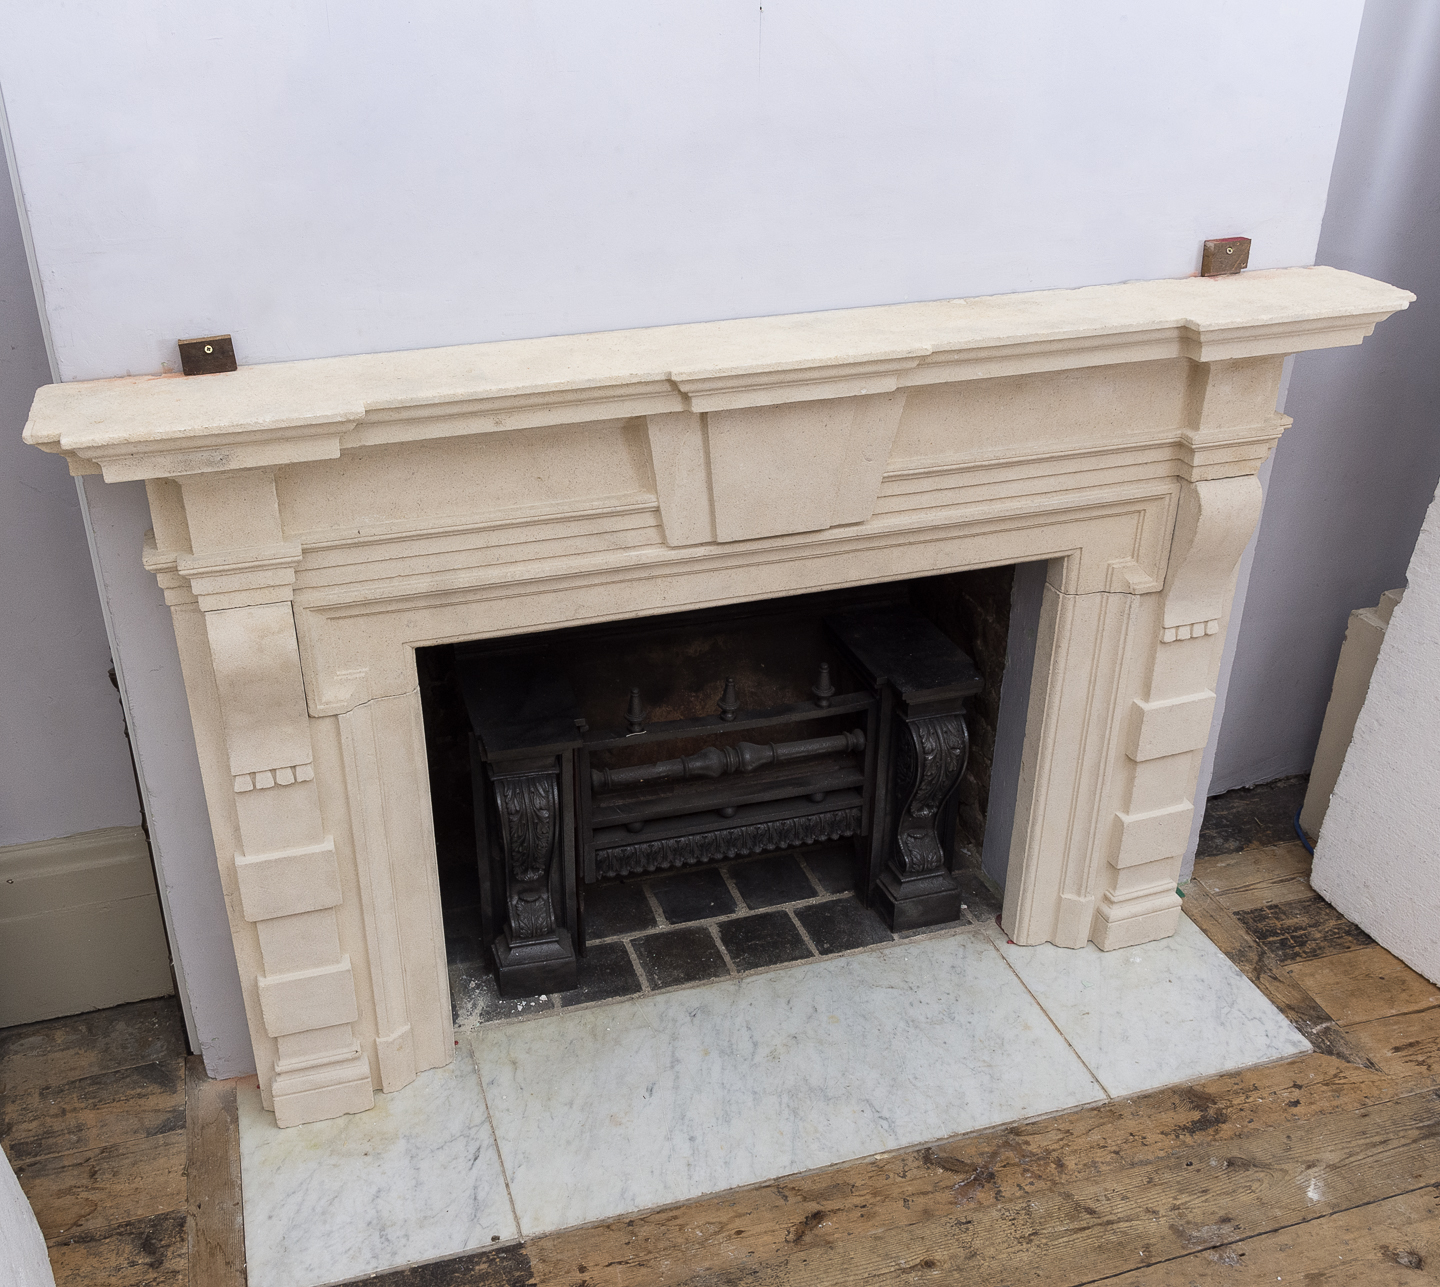 Early twentieth century Bathstone chimneypiece, -128857